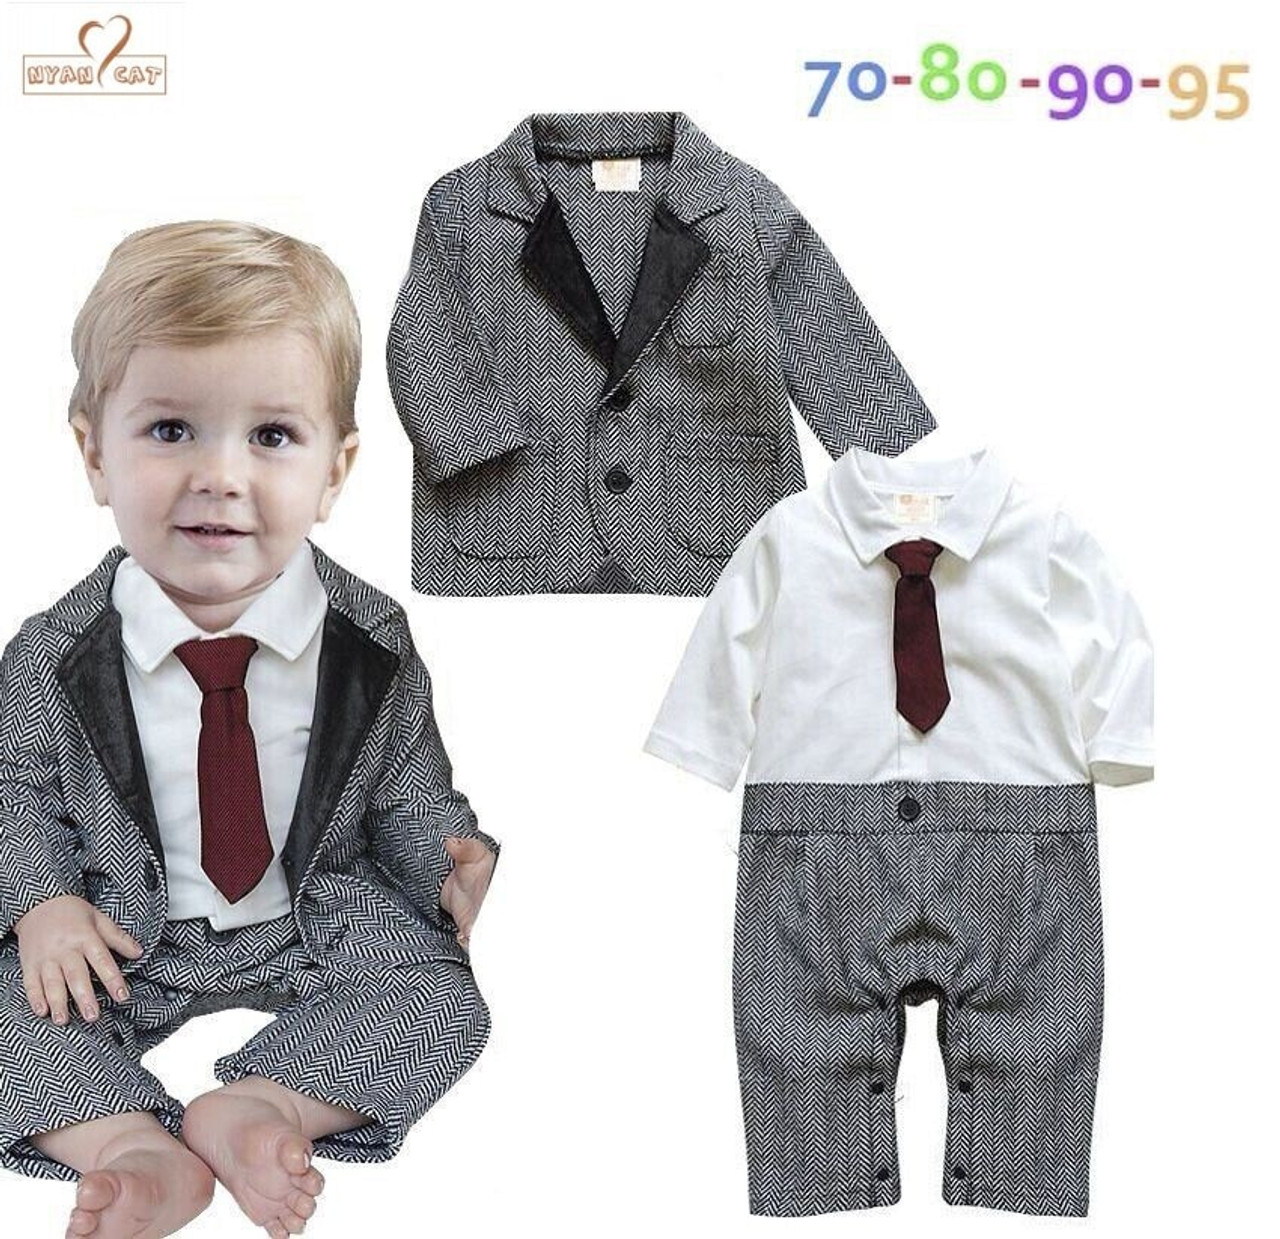 0e727a02d NYAN CAT Baby boy clothes Gentleman Bow tie Romper Coat outfit Holiday  Wedding Party Wear Baby Infant Formal Wear 2pc Suit